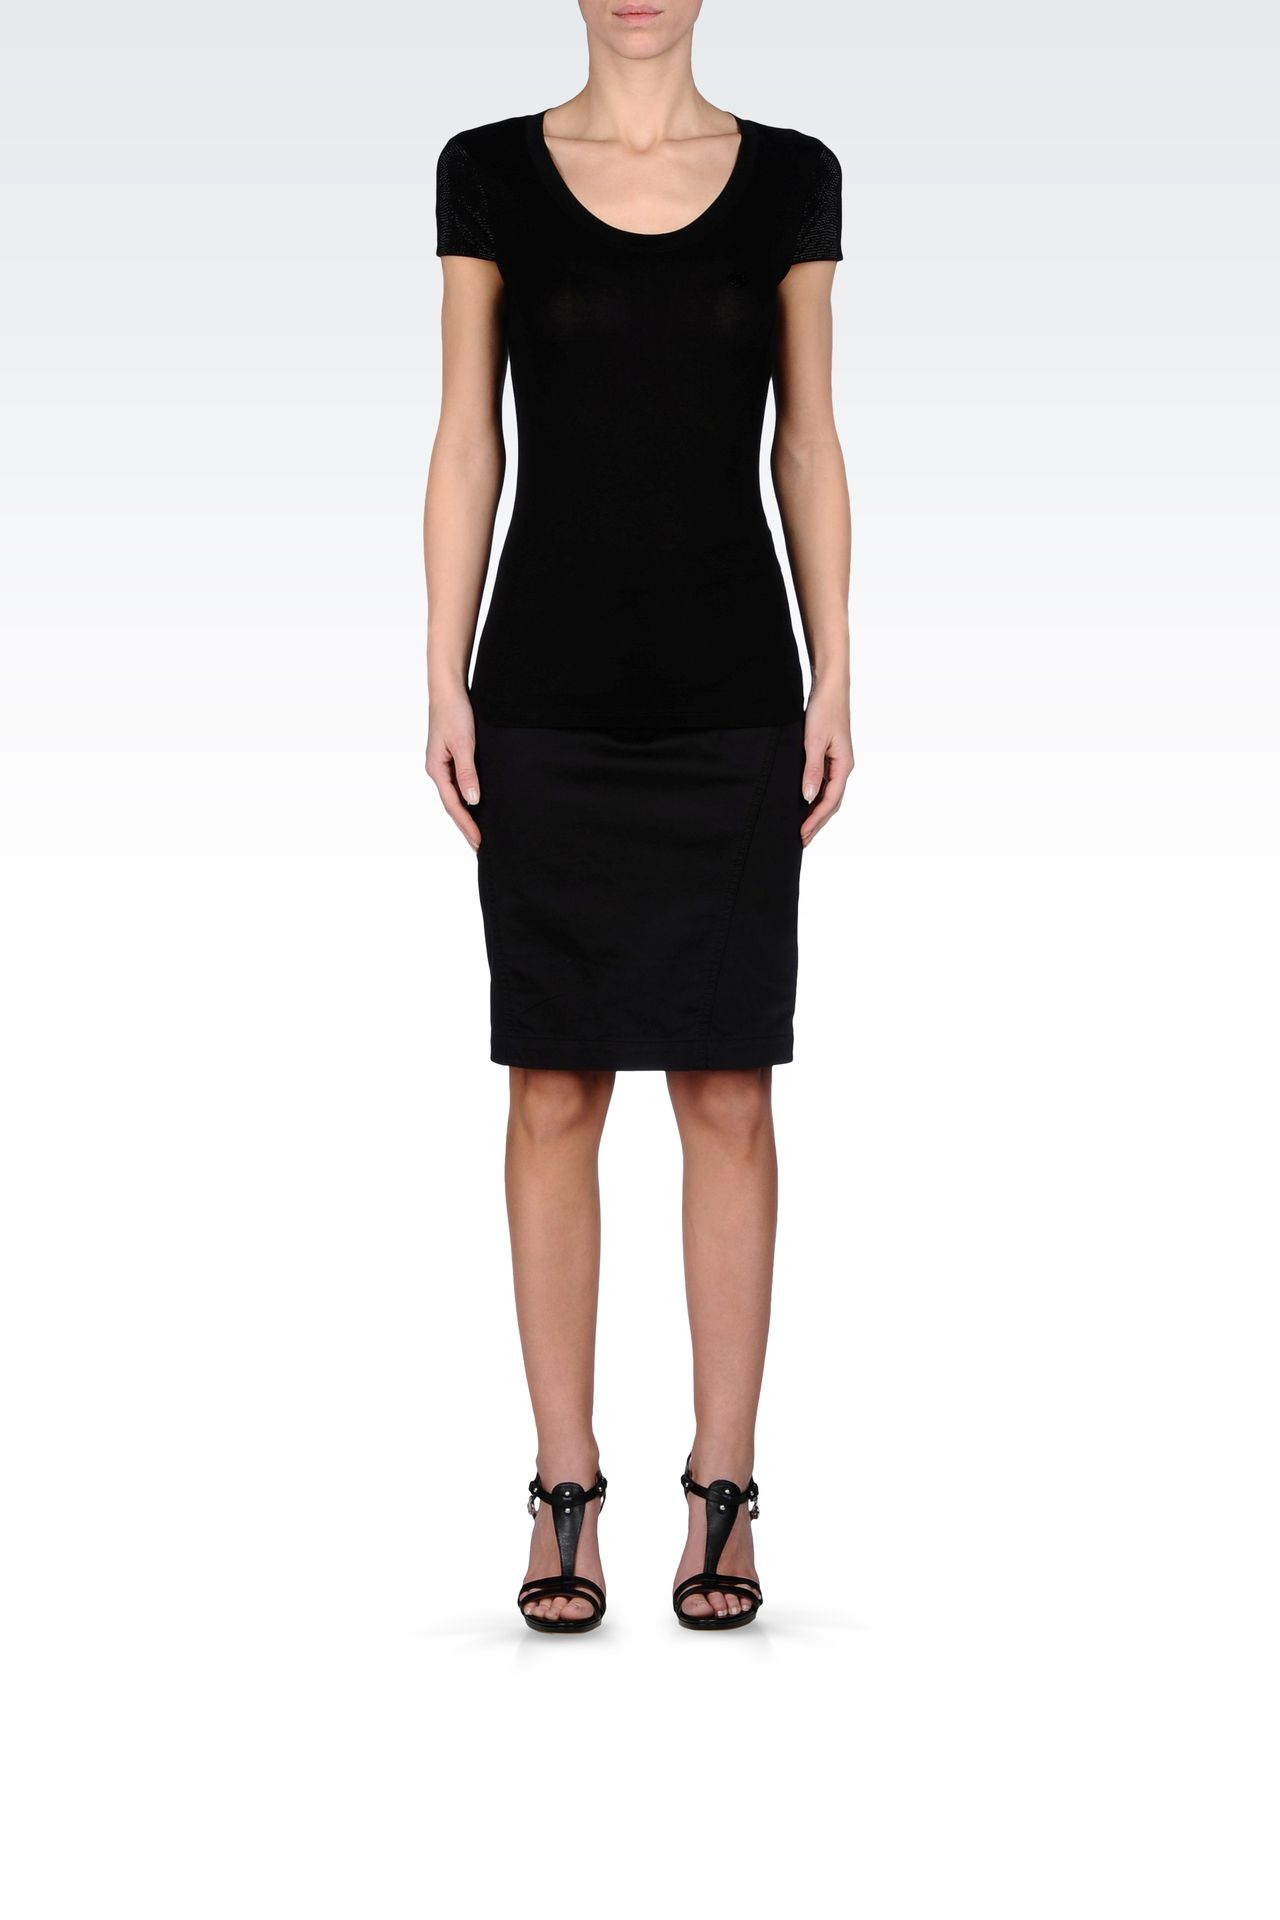 PENCIL SKIRT IN STRETCH COTTON: Mini skirts Women by Armani - 0